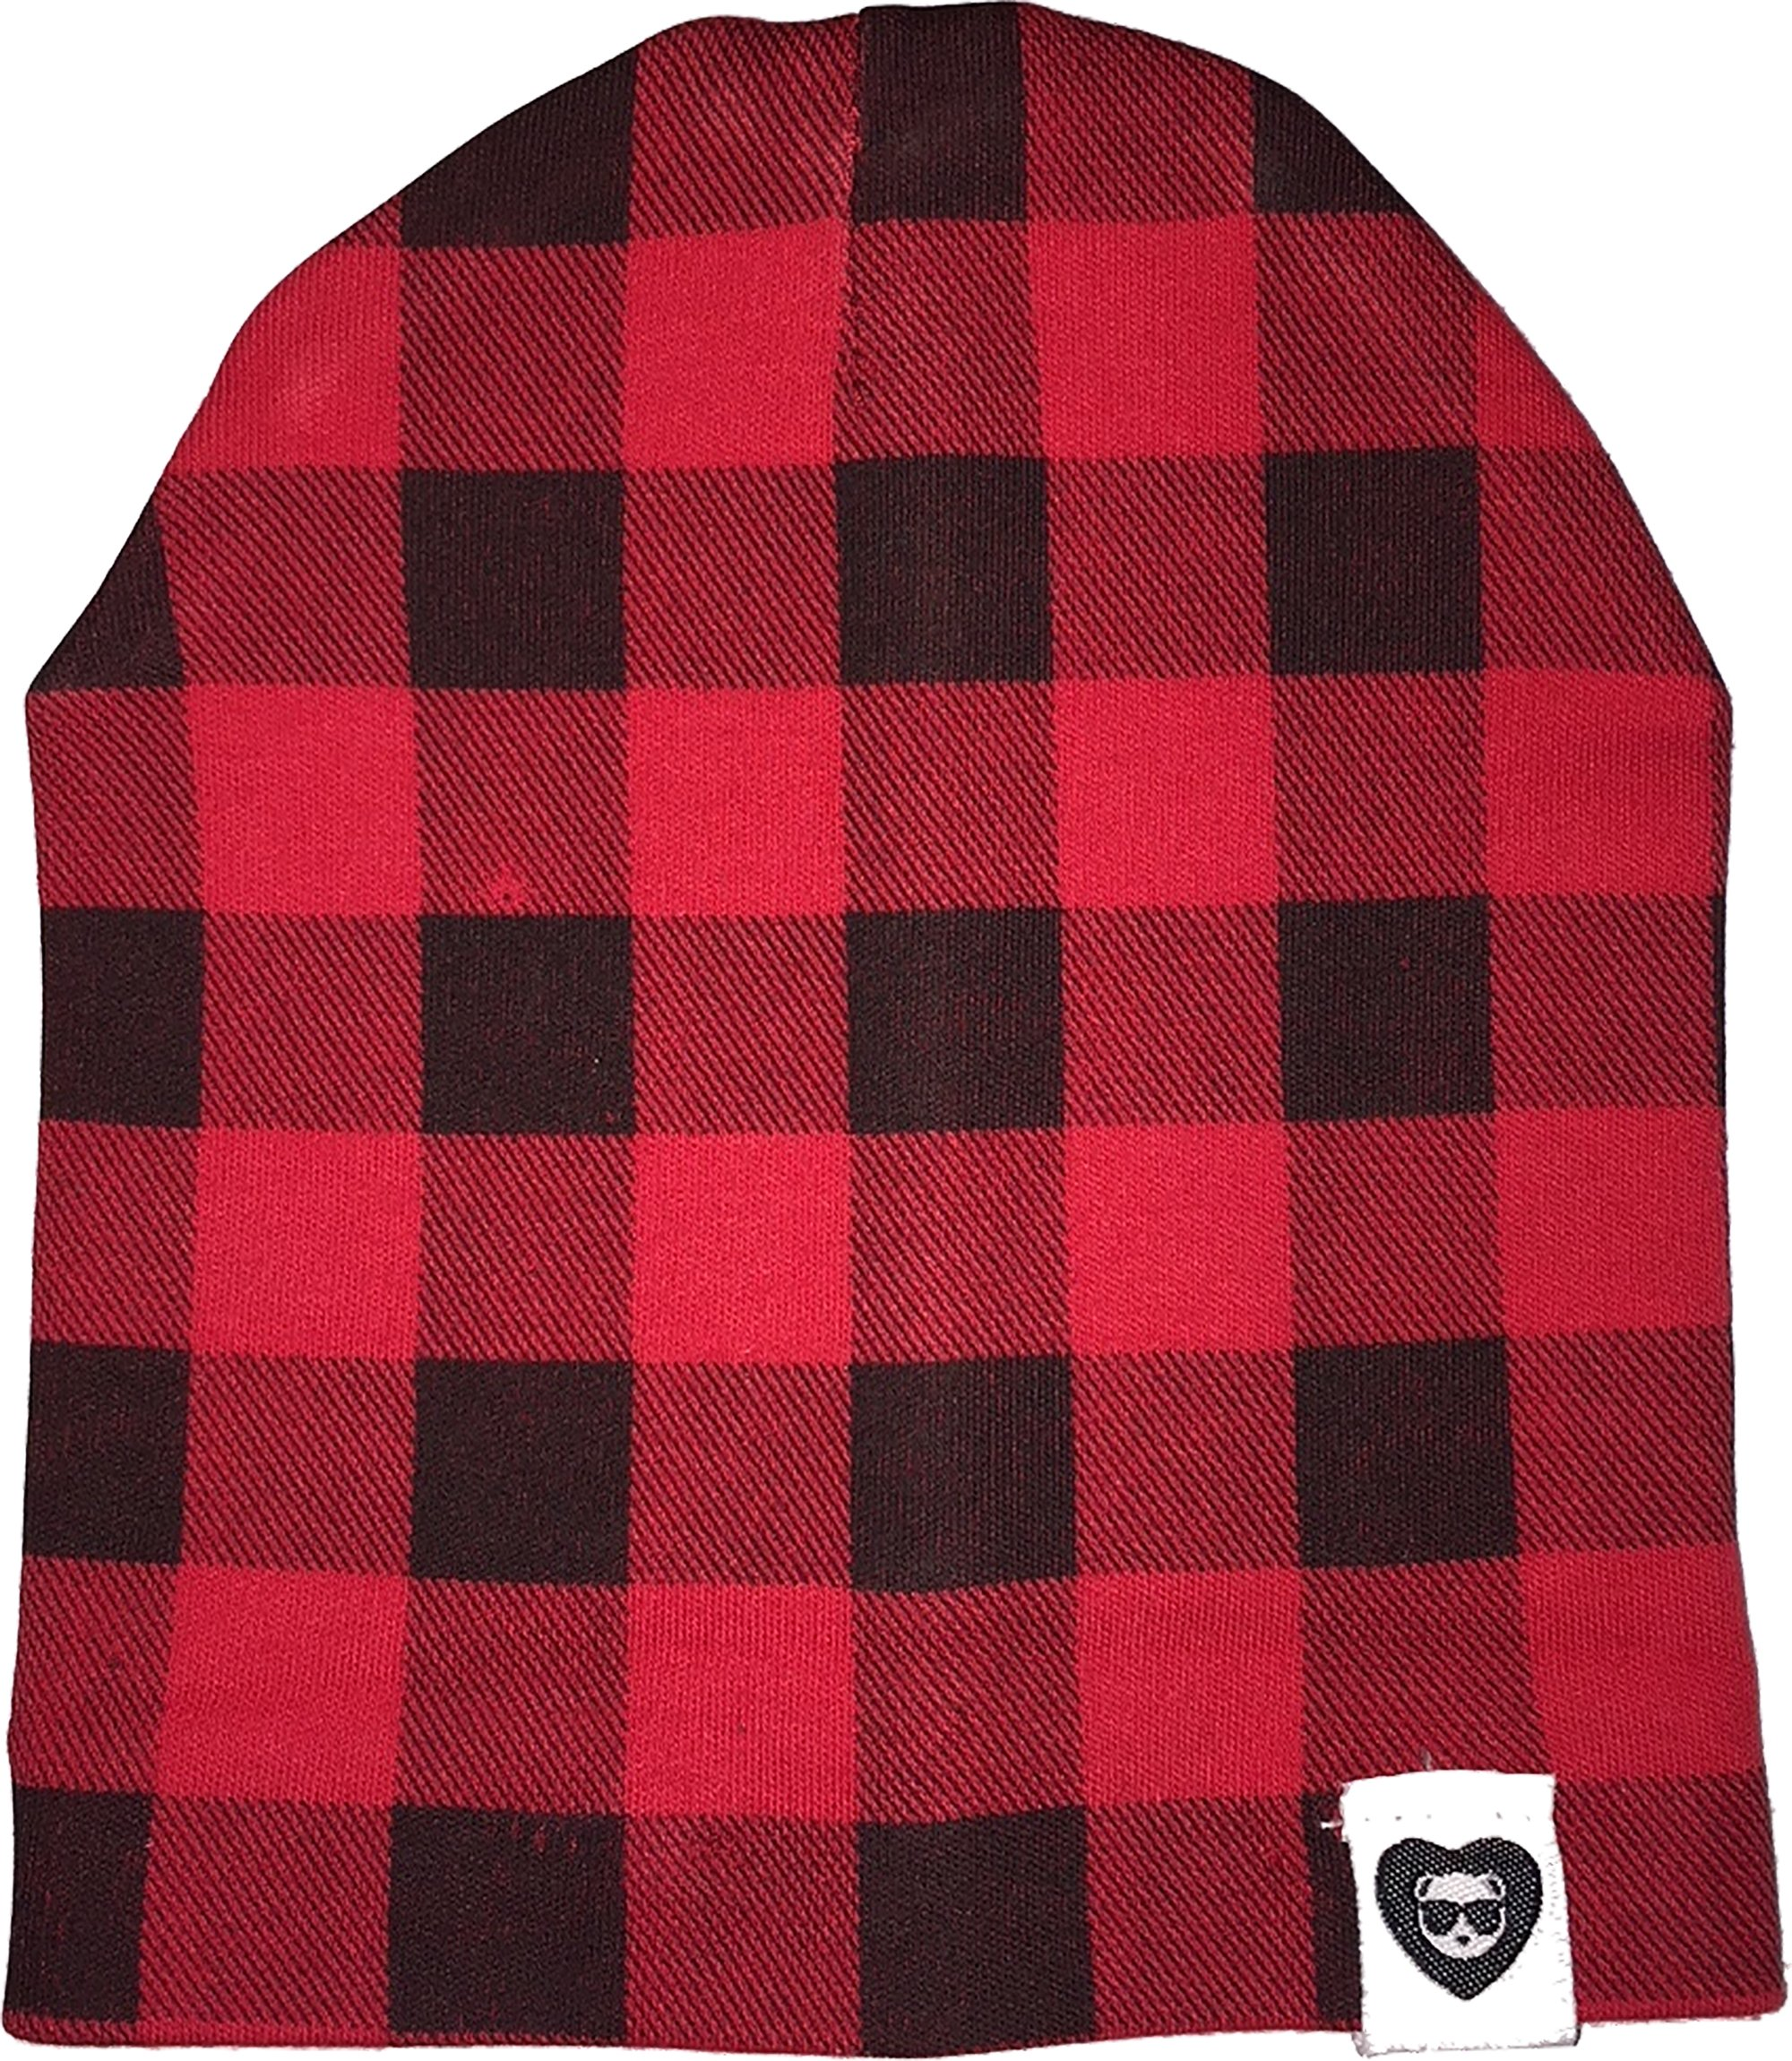 Fayfaire Winter Hat Beanie Outfit : Boutique Quality Adorable Red Buffalo Plaid 2T-6T